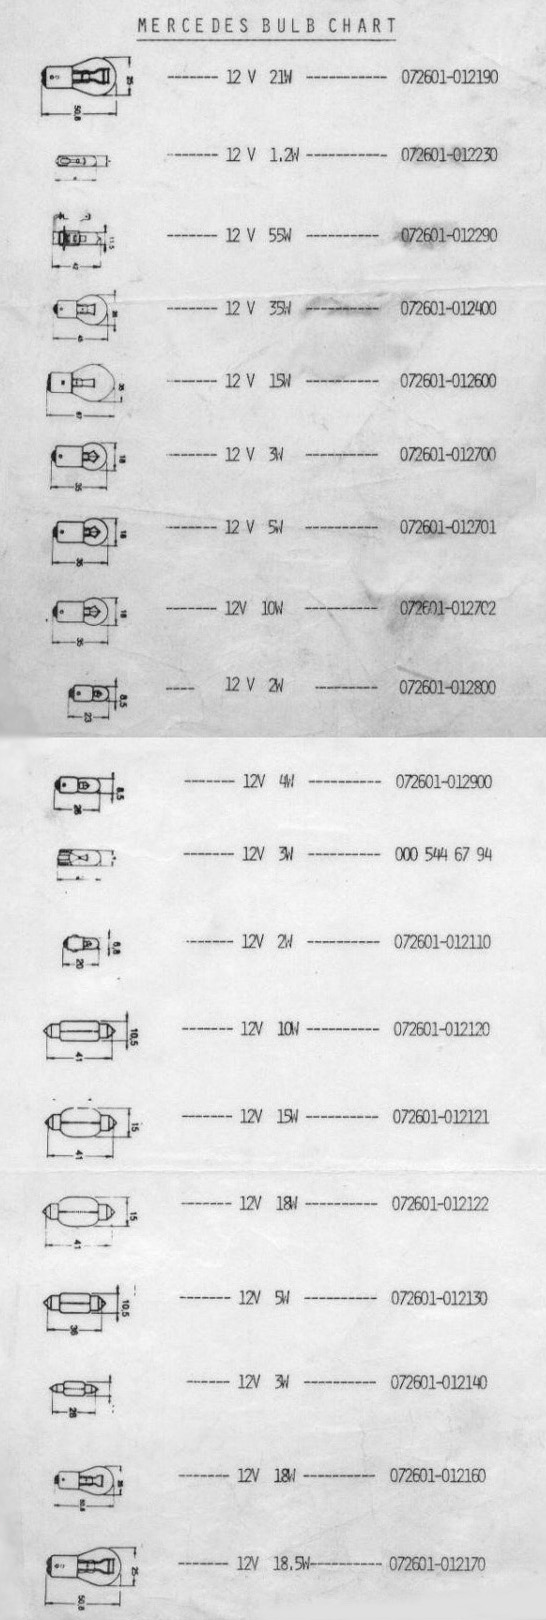 Mercedes Benz Ponton Fog Lamps And Bulb Types 169 Www